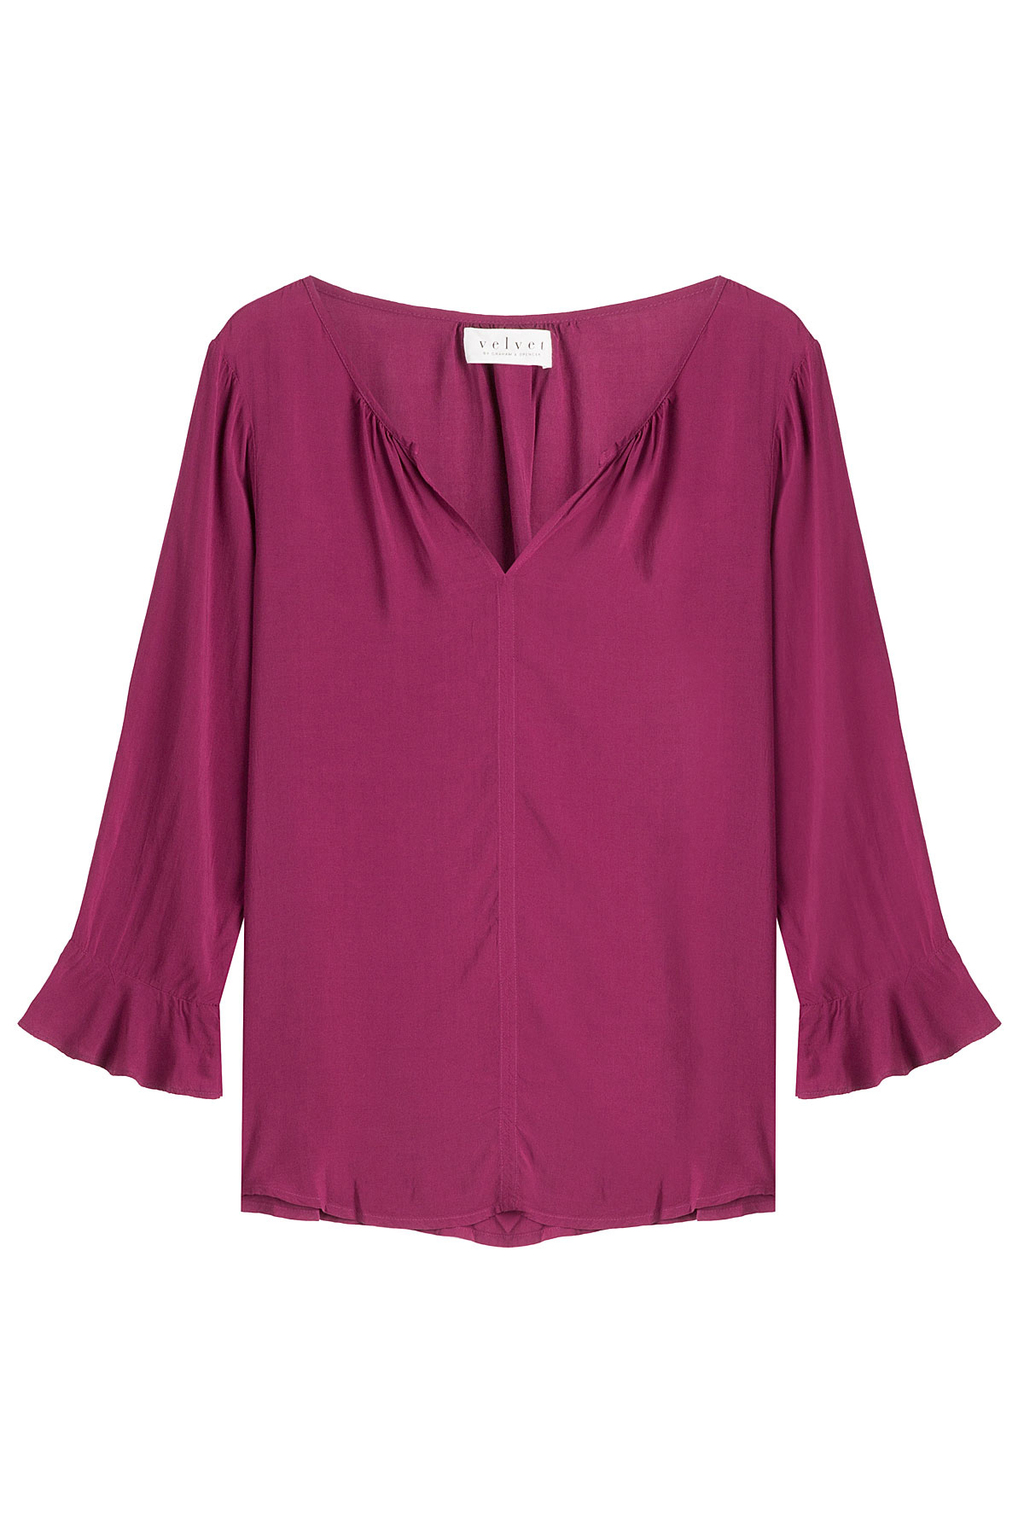 Fluid Blouse - neckline: v-neck; pattern: plain; style: blouse; sleeve style: trumpet; predominant colour: hot pink; occasions: casual; length: standard; fibres: viscose/rayon - 100%; fit: body skimming; sleeve length: 3/4 length; texture group: sheer fabrics/chiffon/organza etc.; pattern type: fabric; season: s/s 2013; wardrobe: highlight